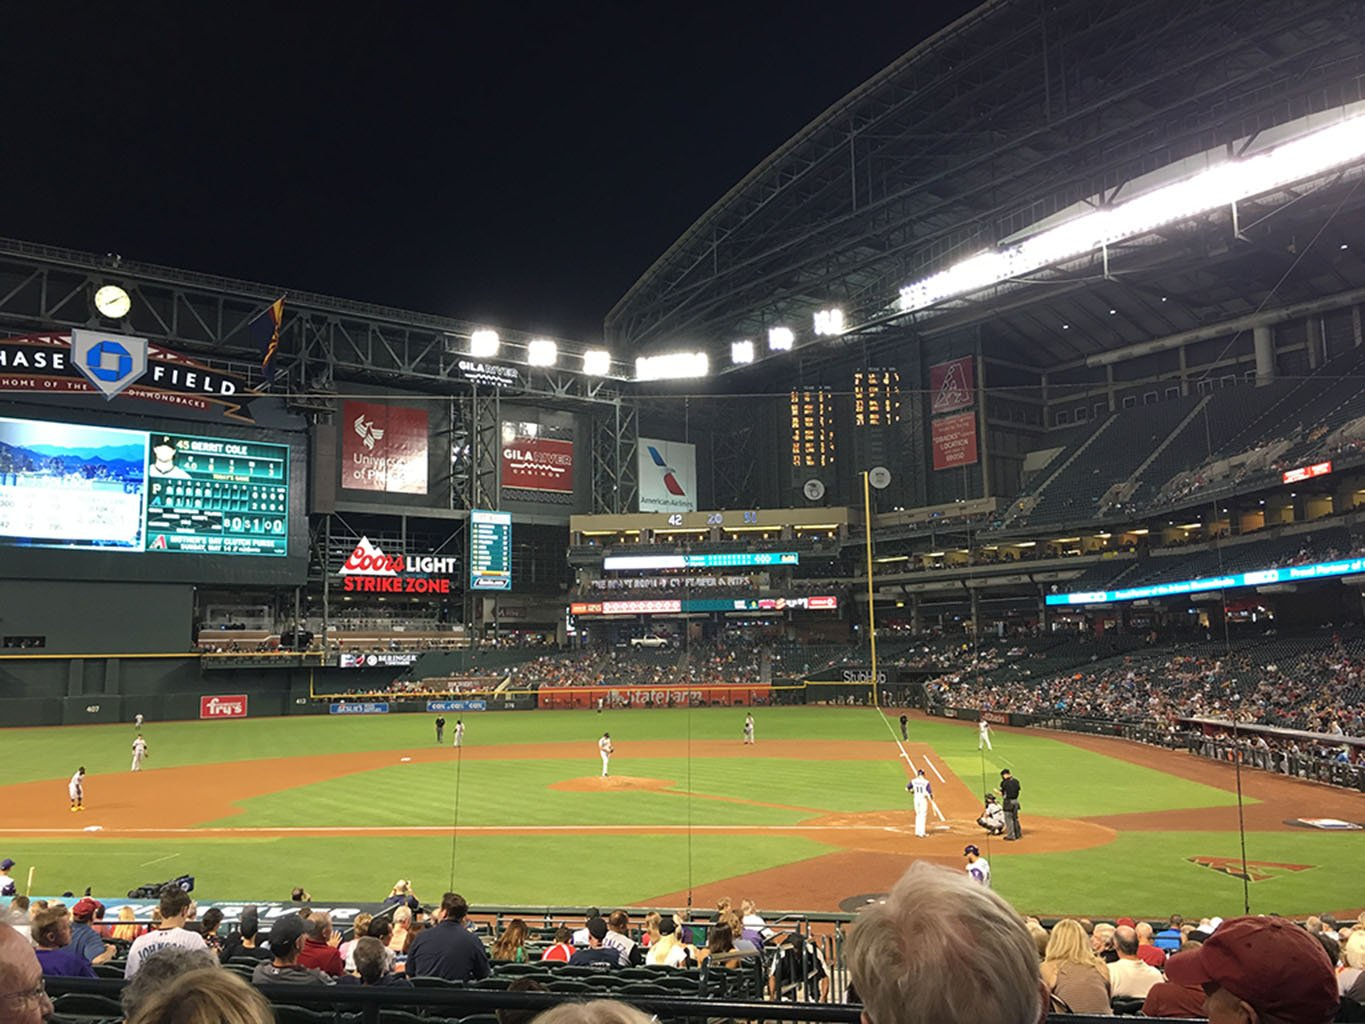 Pittsburgh Pirates against the Diamondbacks at Chase Field on Thursday, May 11